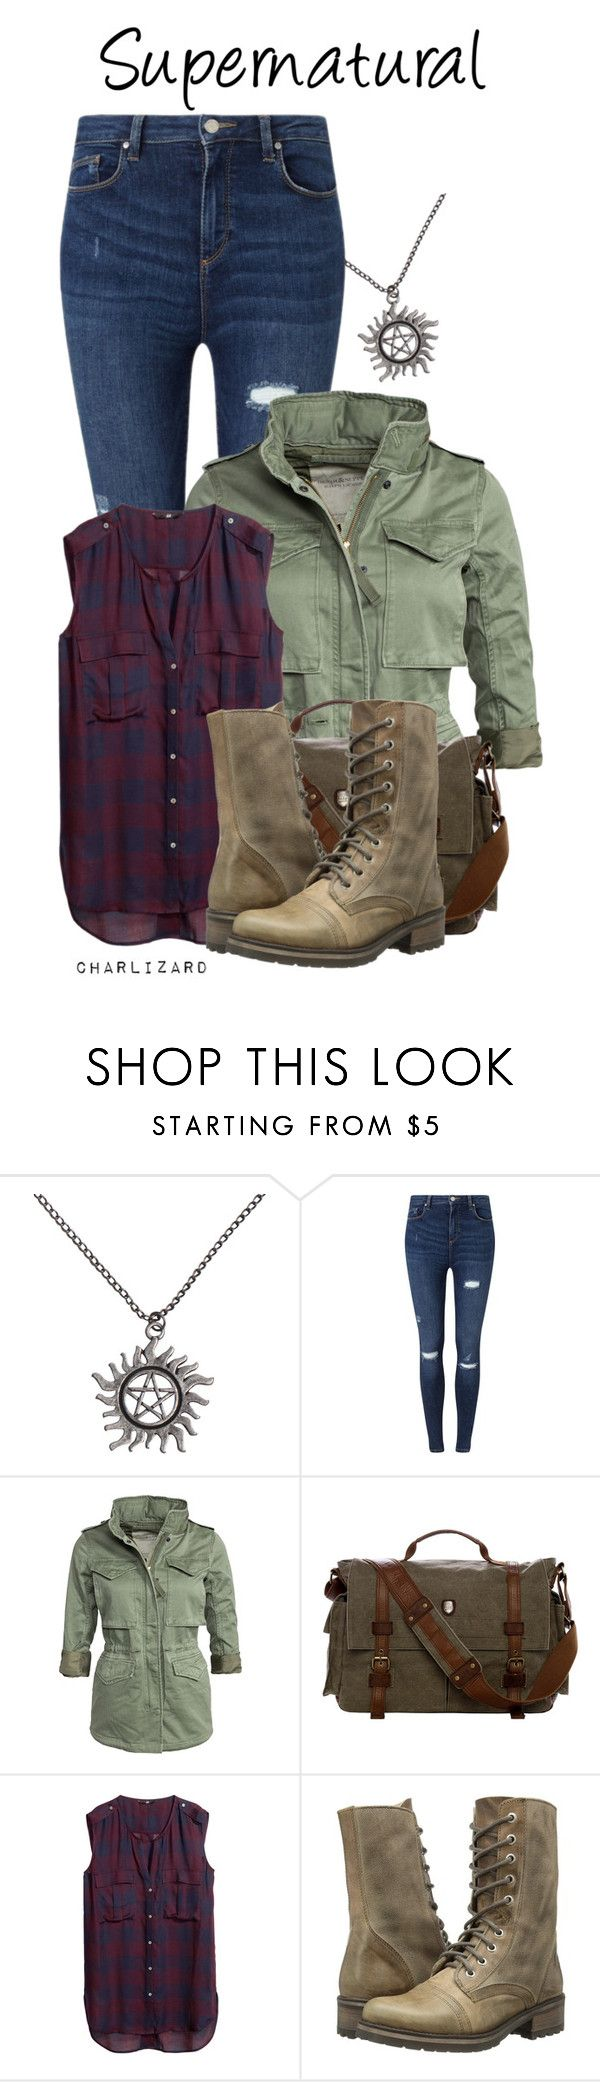 """""""Supernatural"""" by charlizard ❤ liked on Polyvore featuring Miss Selfridge, Denim & Supply by Ralph Lauren, H&M and Steve Madden"""